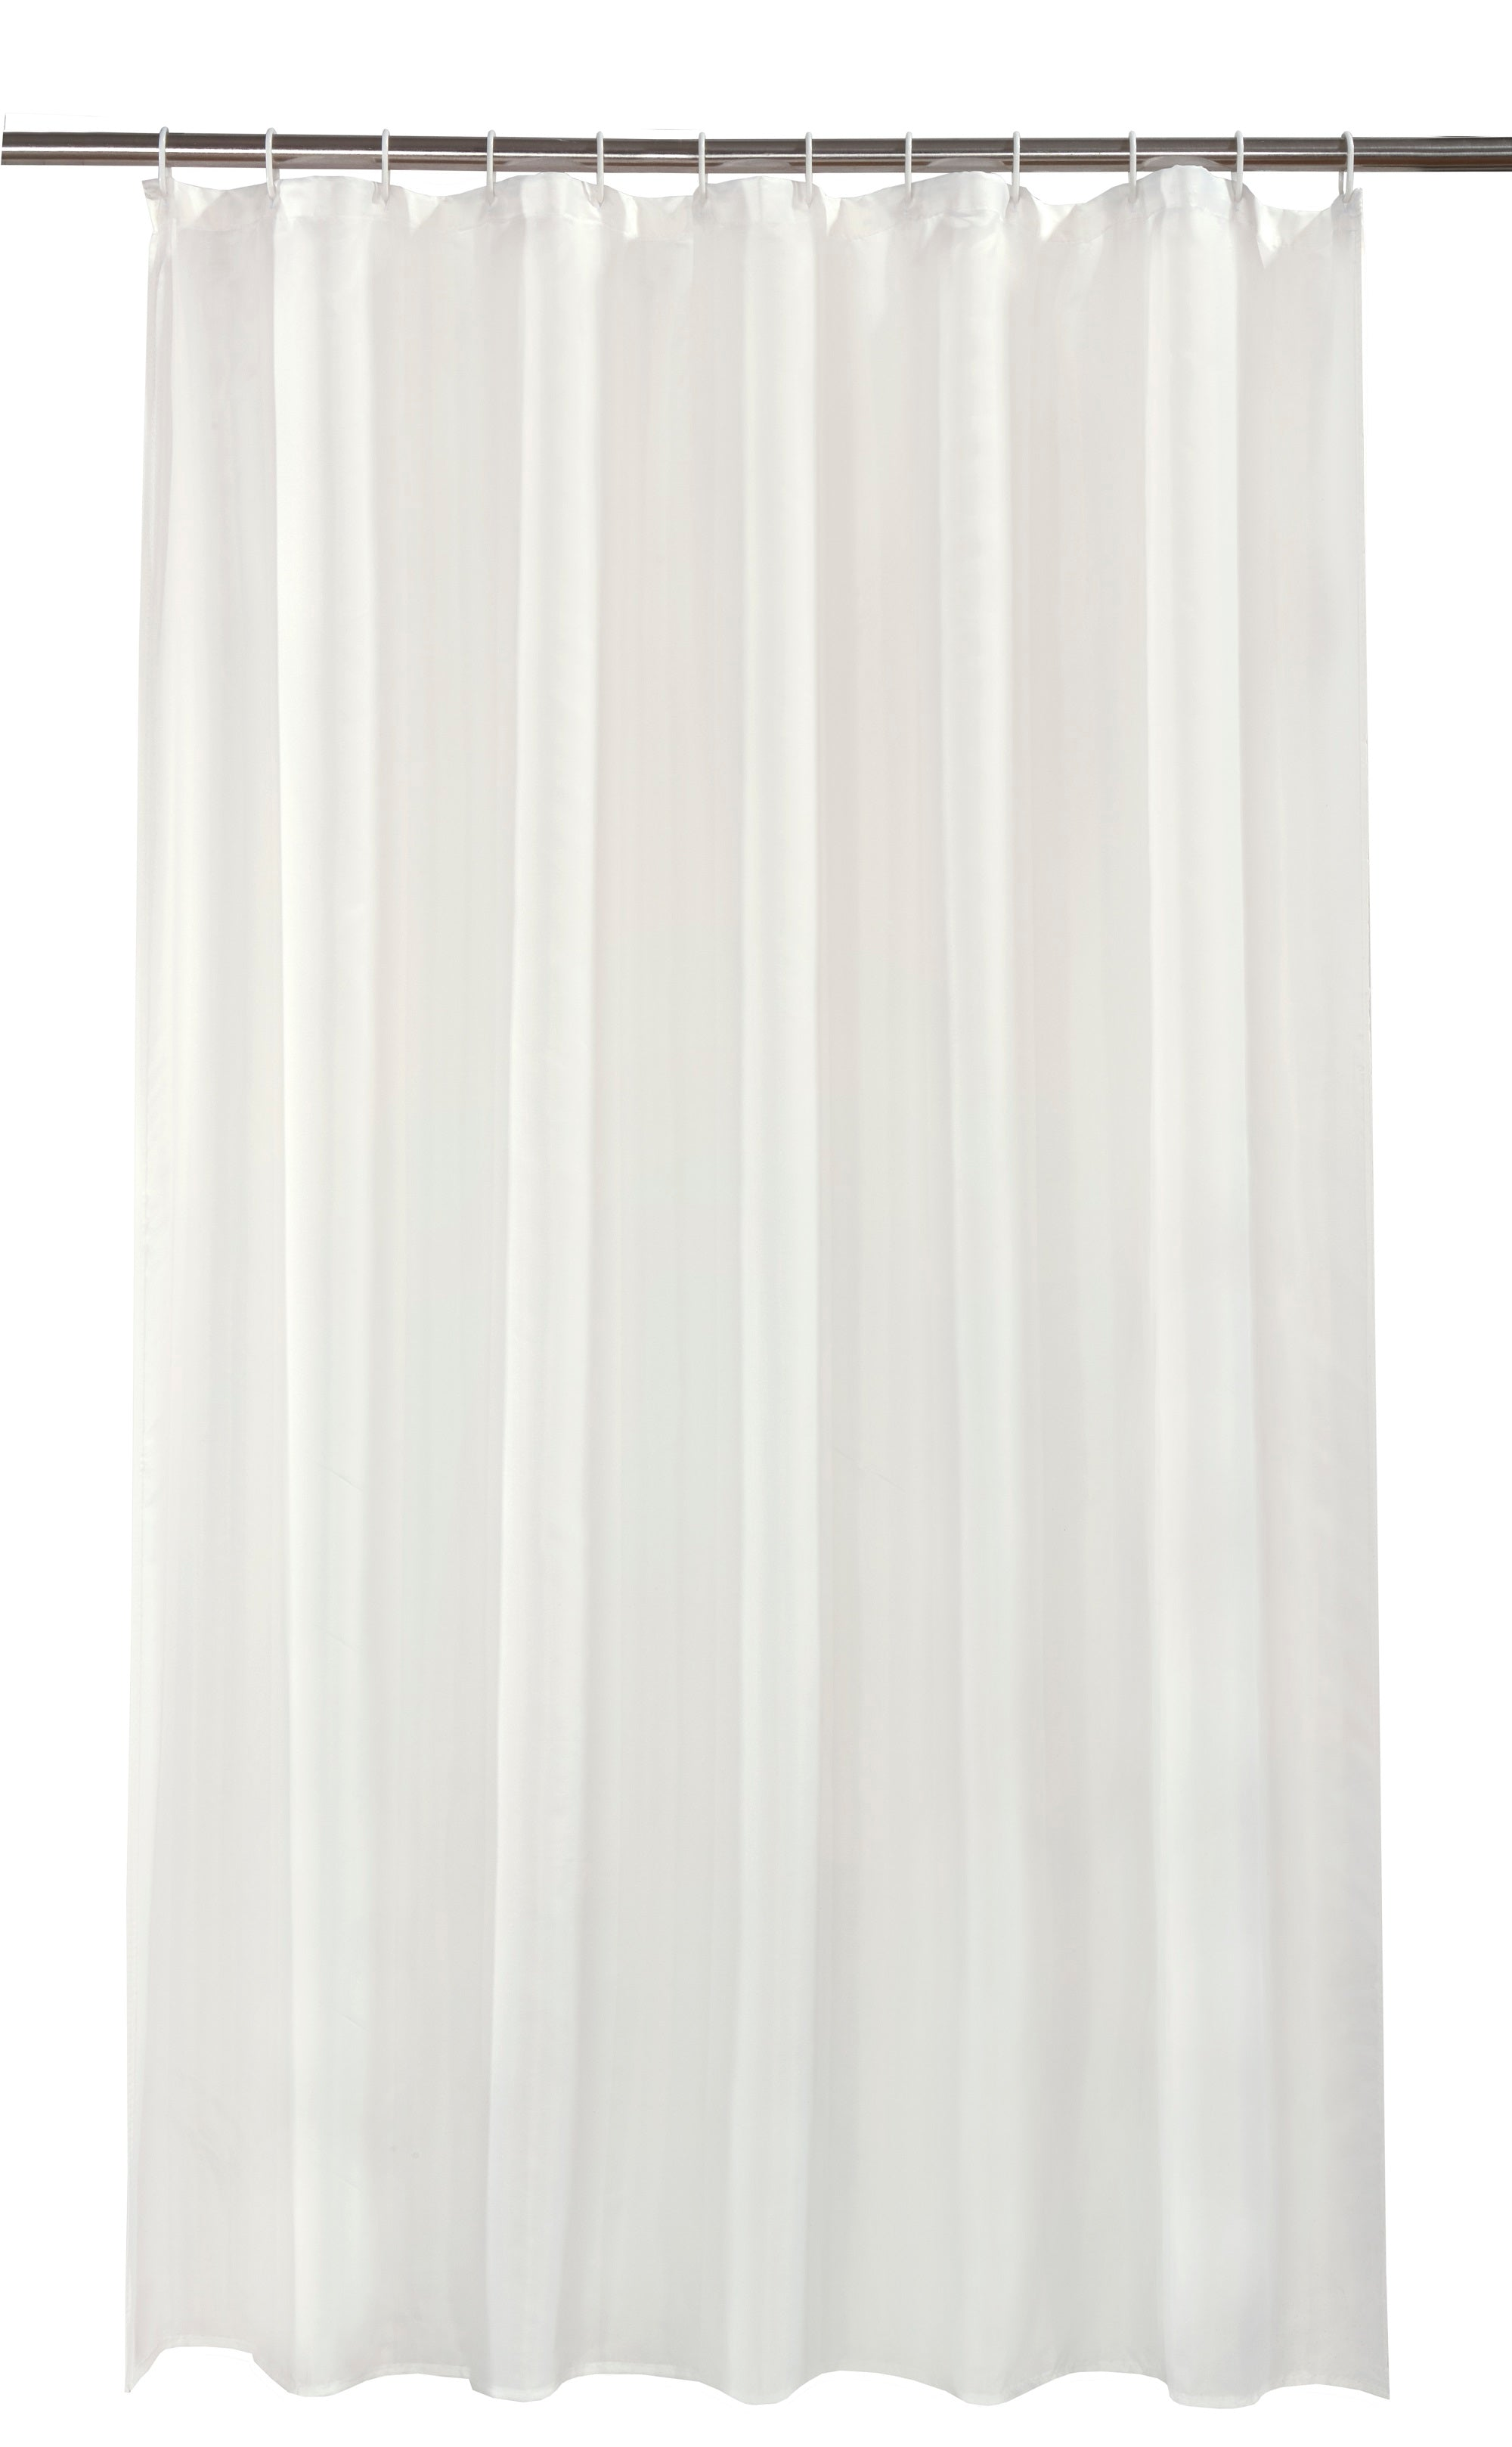 Waterline Cream Shower Curtain With 12 Rings